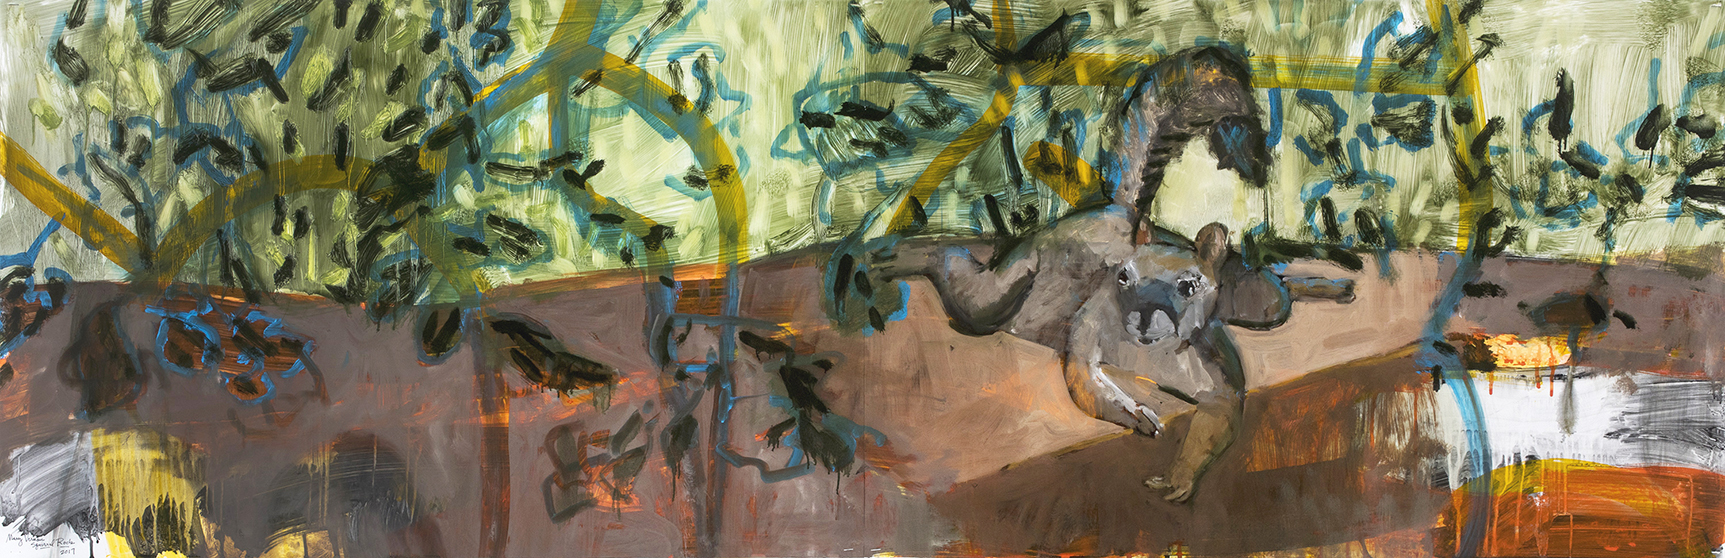 Squirrel Rock, 2017, oil, ink and graphite on yupo, 26 x 80 inches